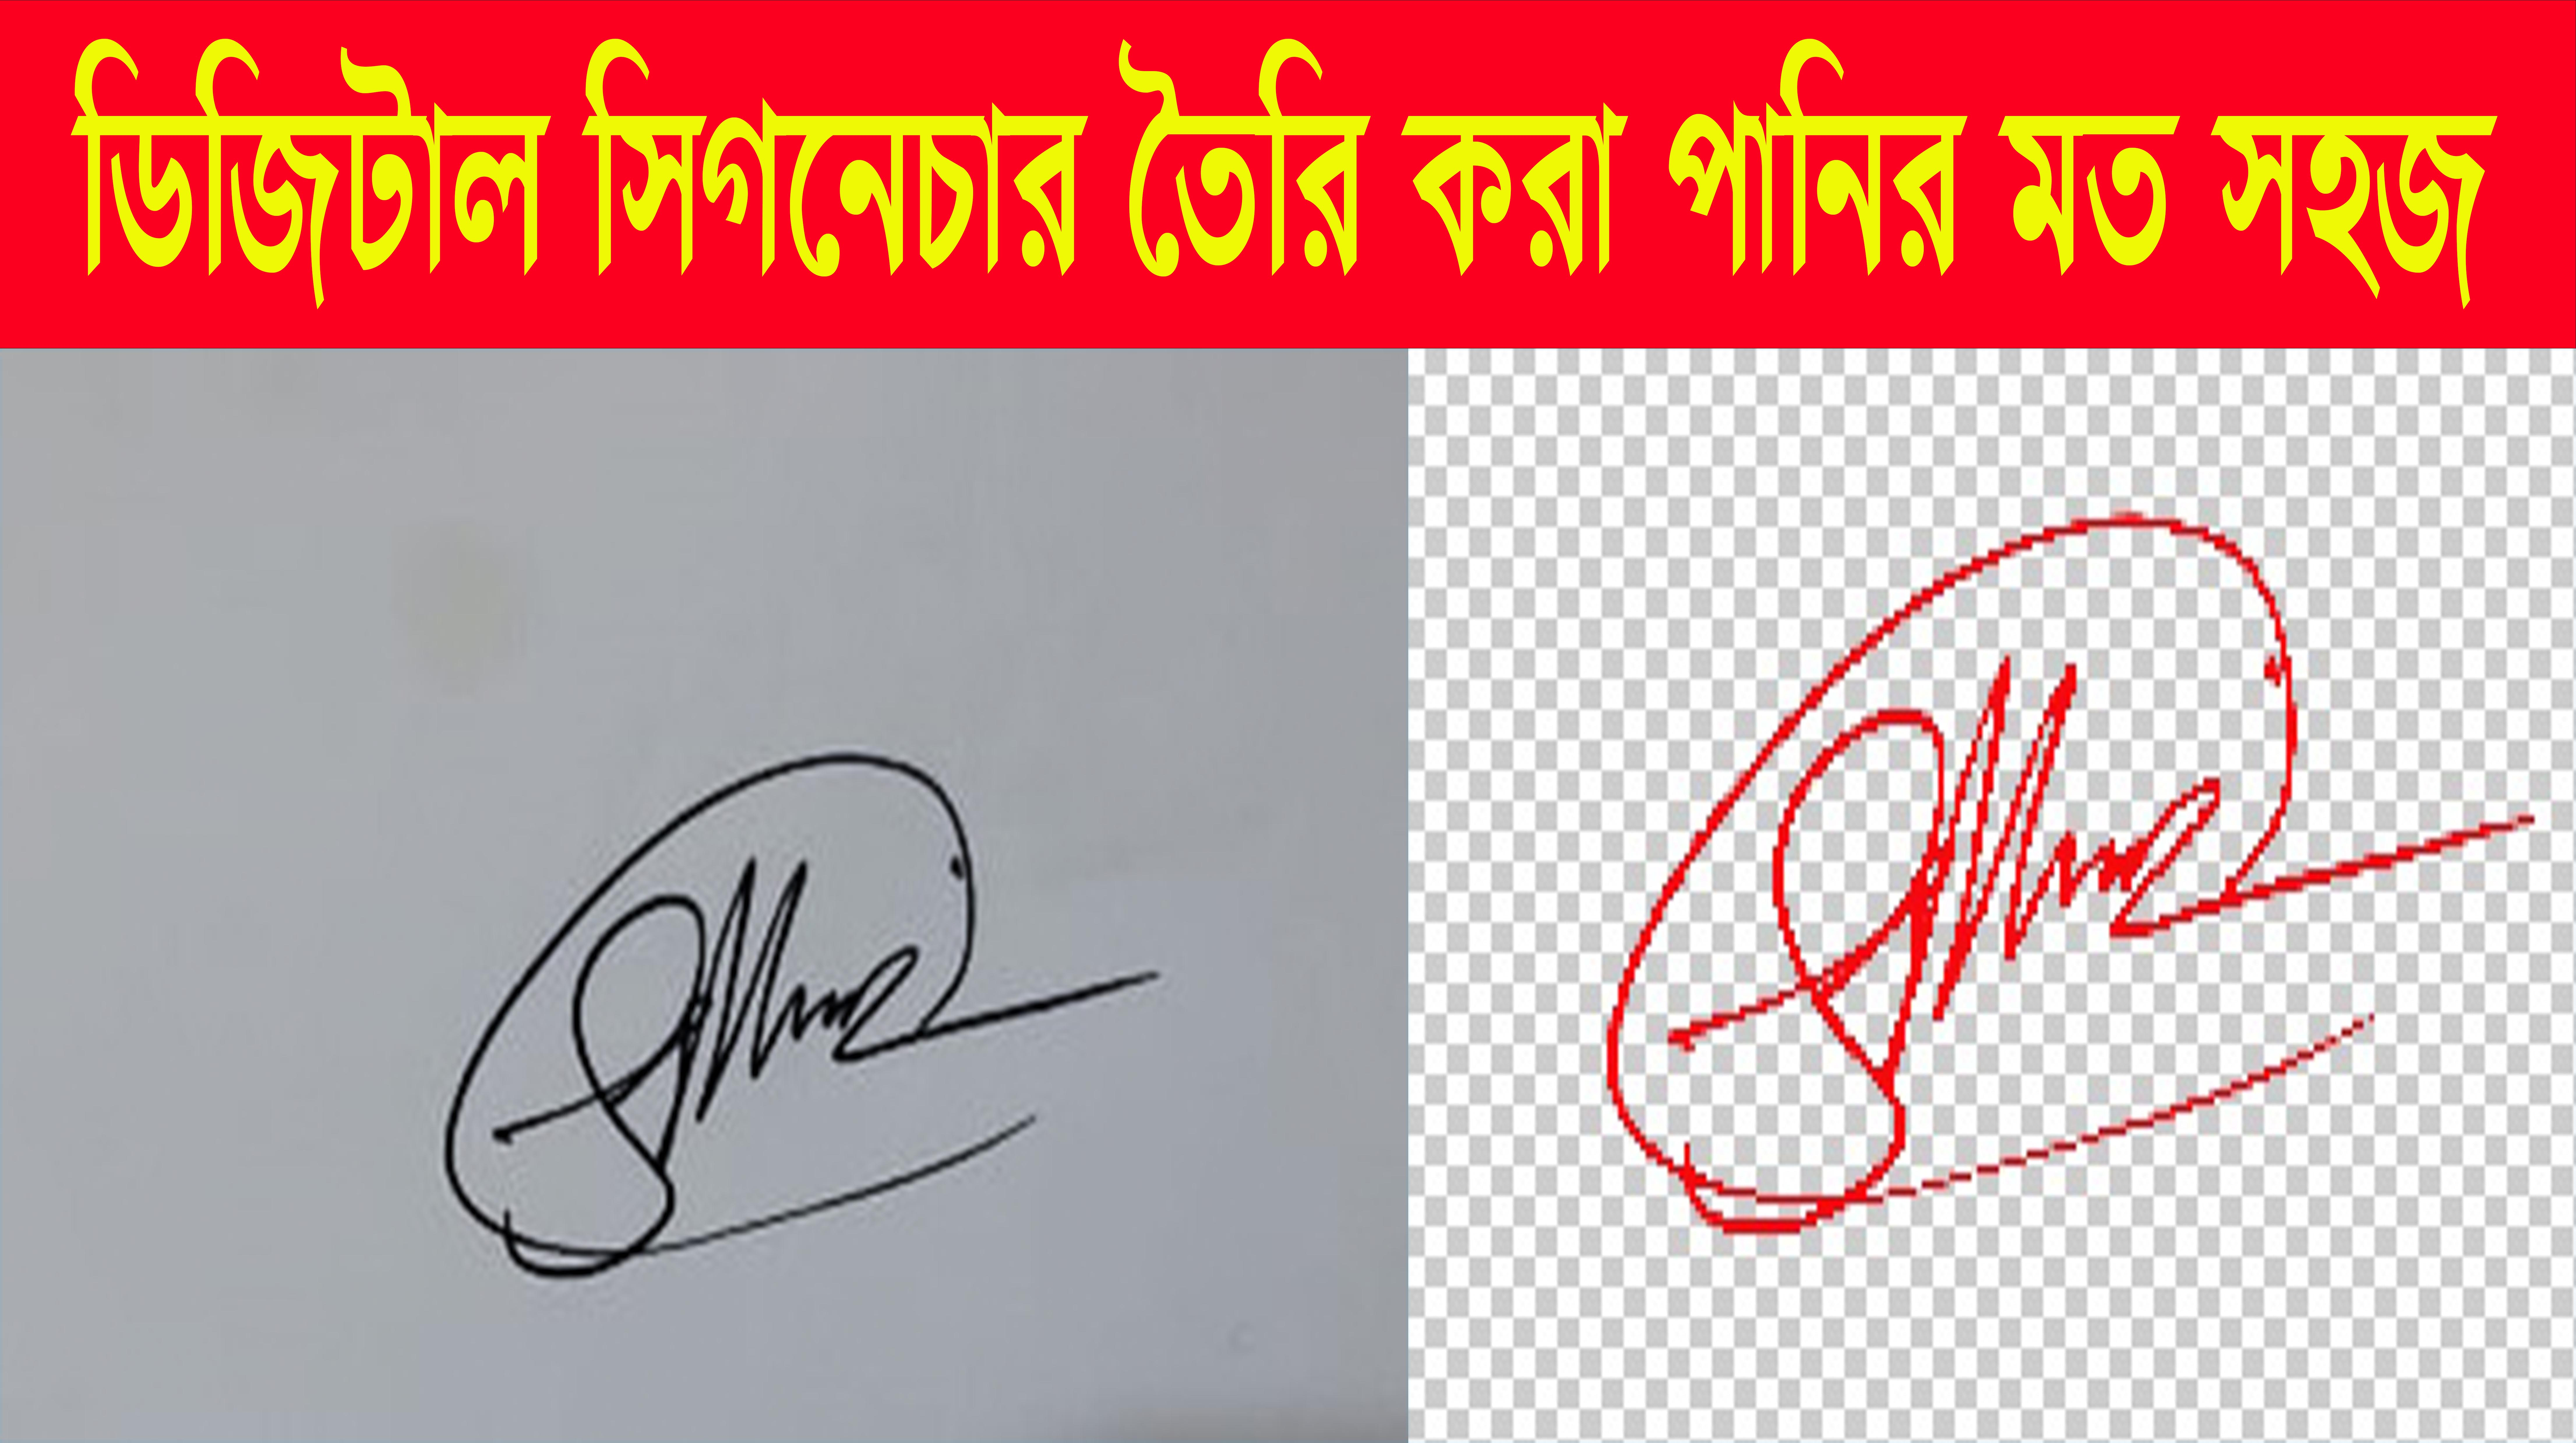 How-to-Make-Digital-Signature-in-Photoshop-2021